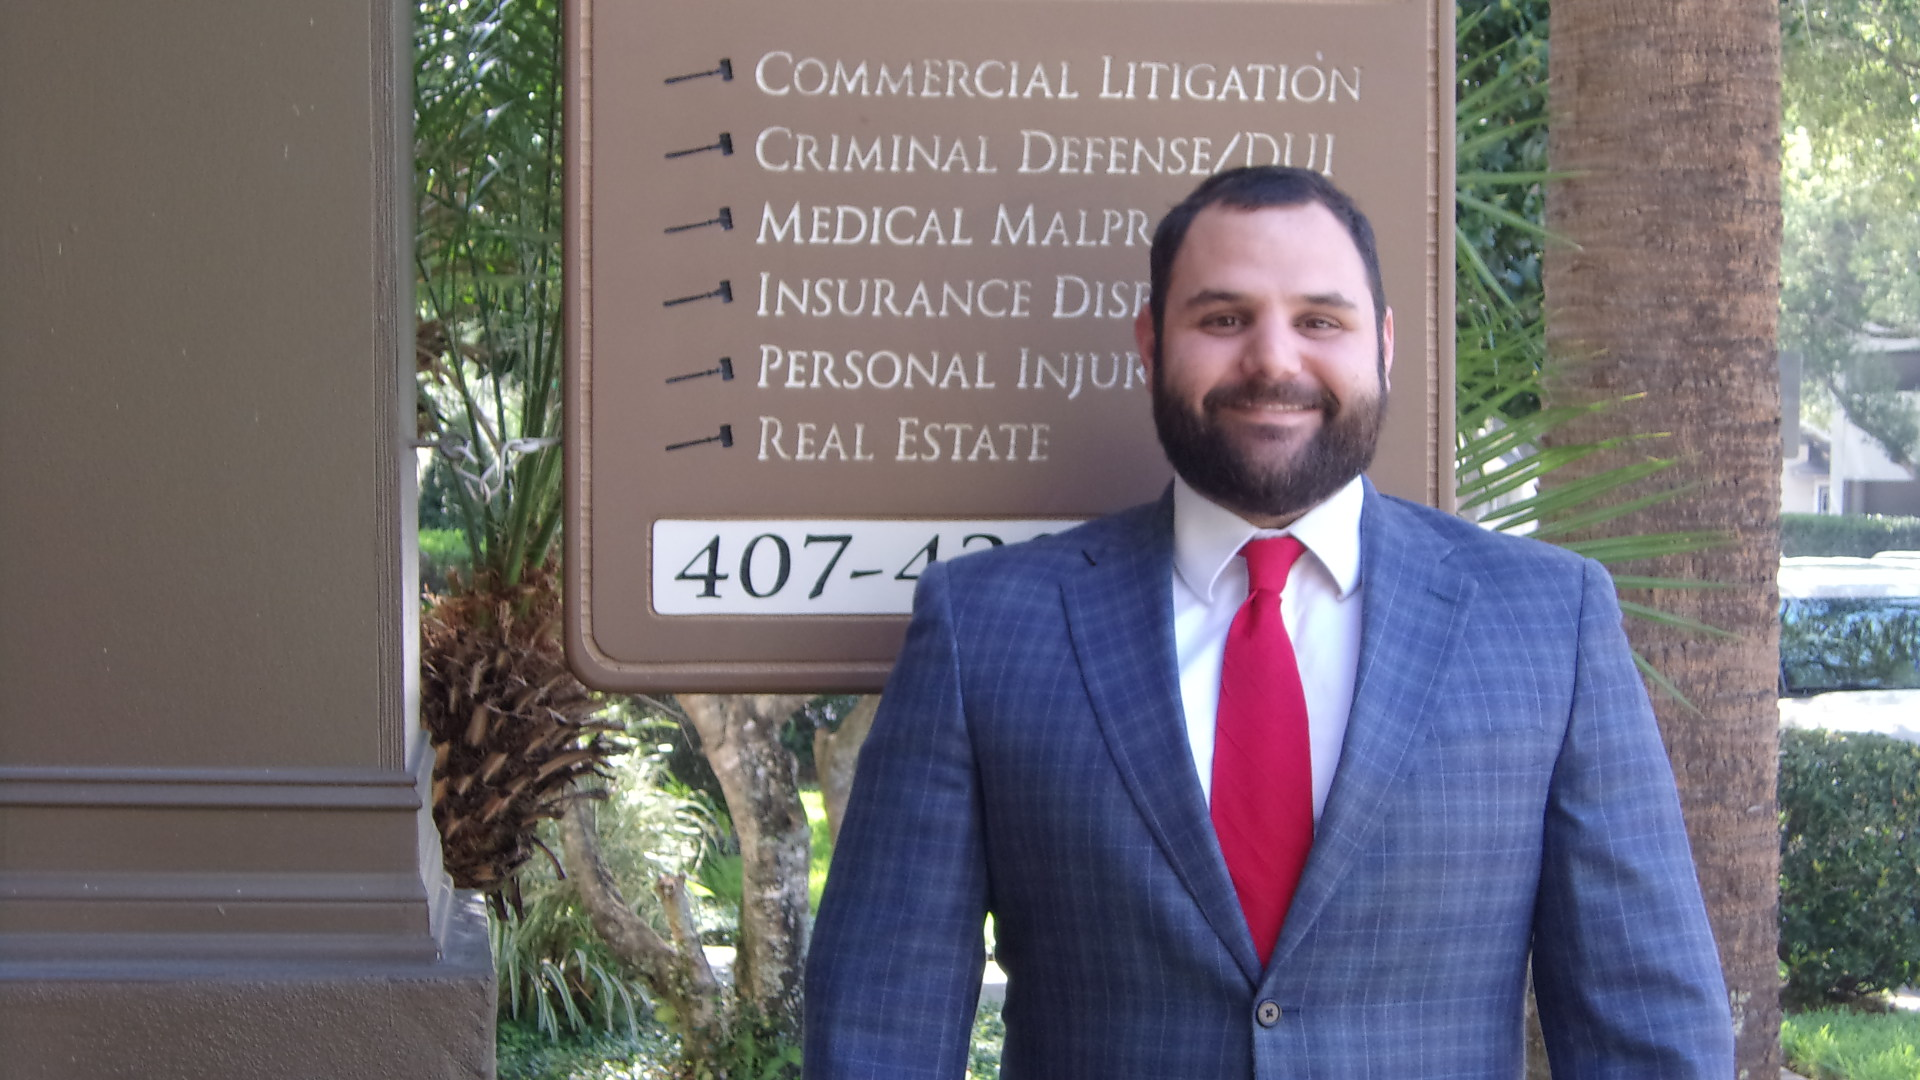 criminal law p1ip Criminal injury lawyers personal injury protection texas what to do if injured at work texas criminal injury lawyers texas personal injury protection law.